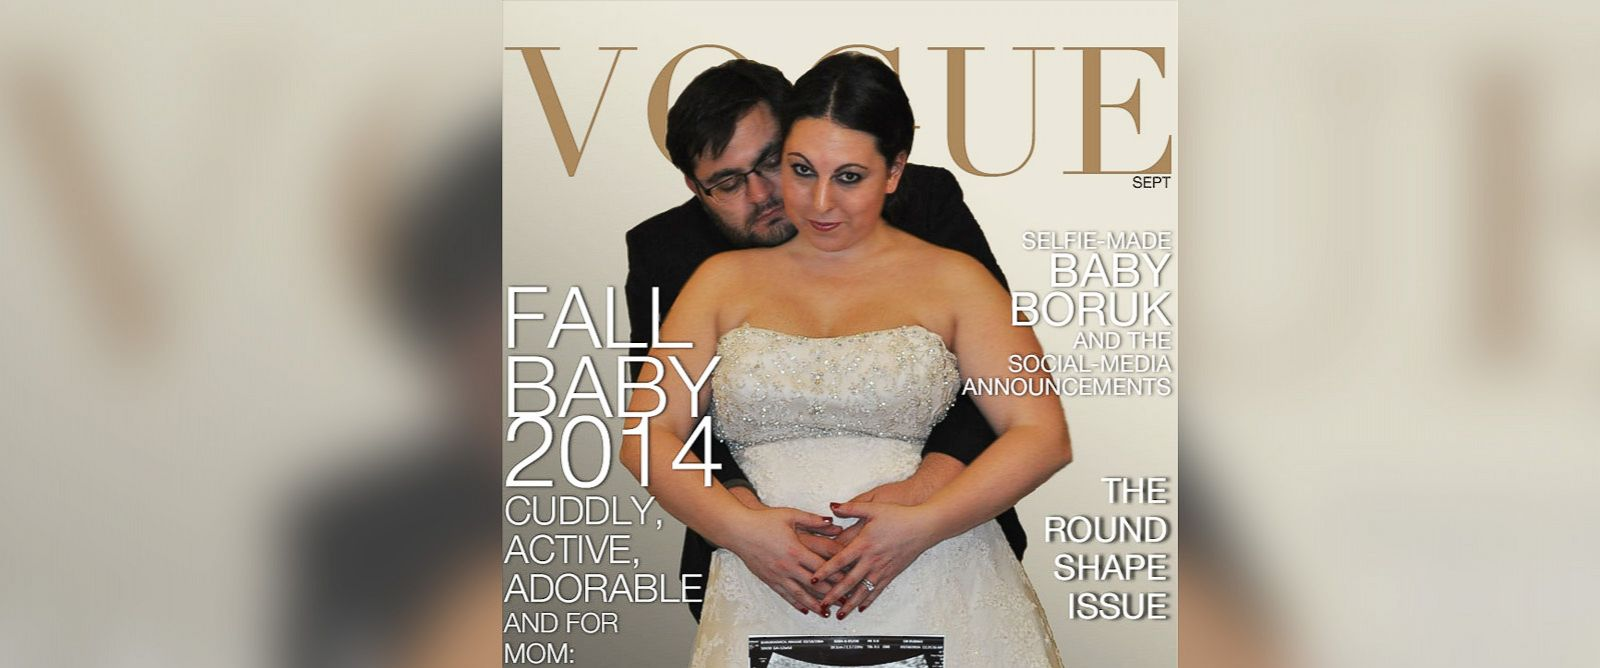 PHOTO: Gennady Borukhovich and his wife Maggie announce pregnancy with a Kim Kardashian and Kanye West Vogue cover parody.